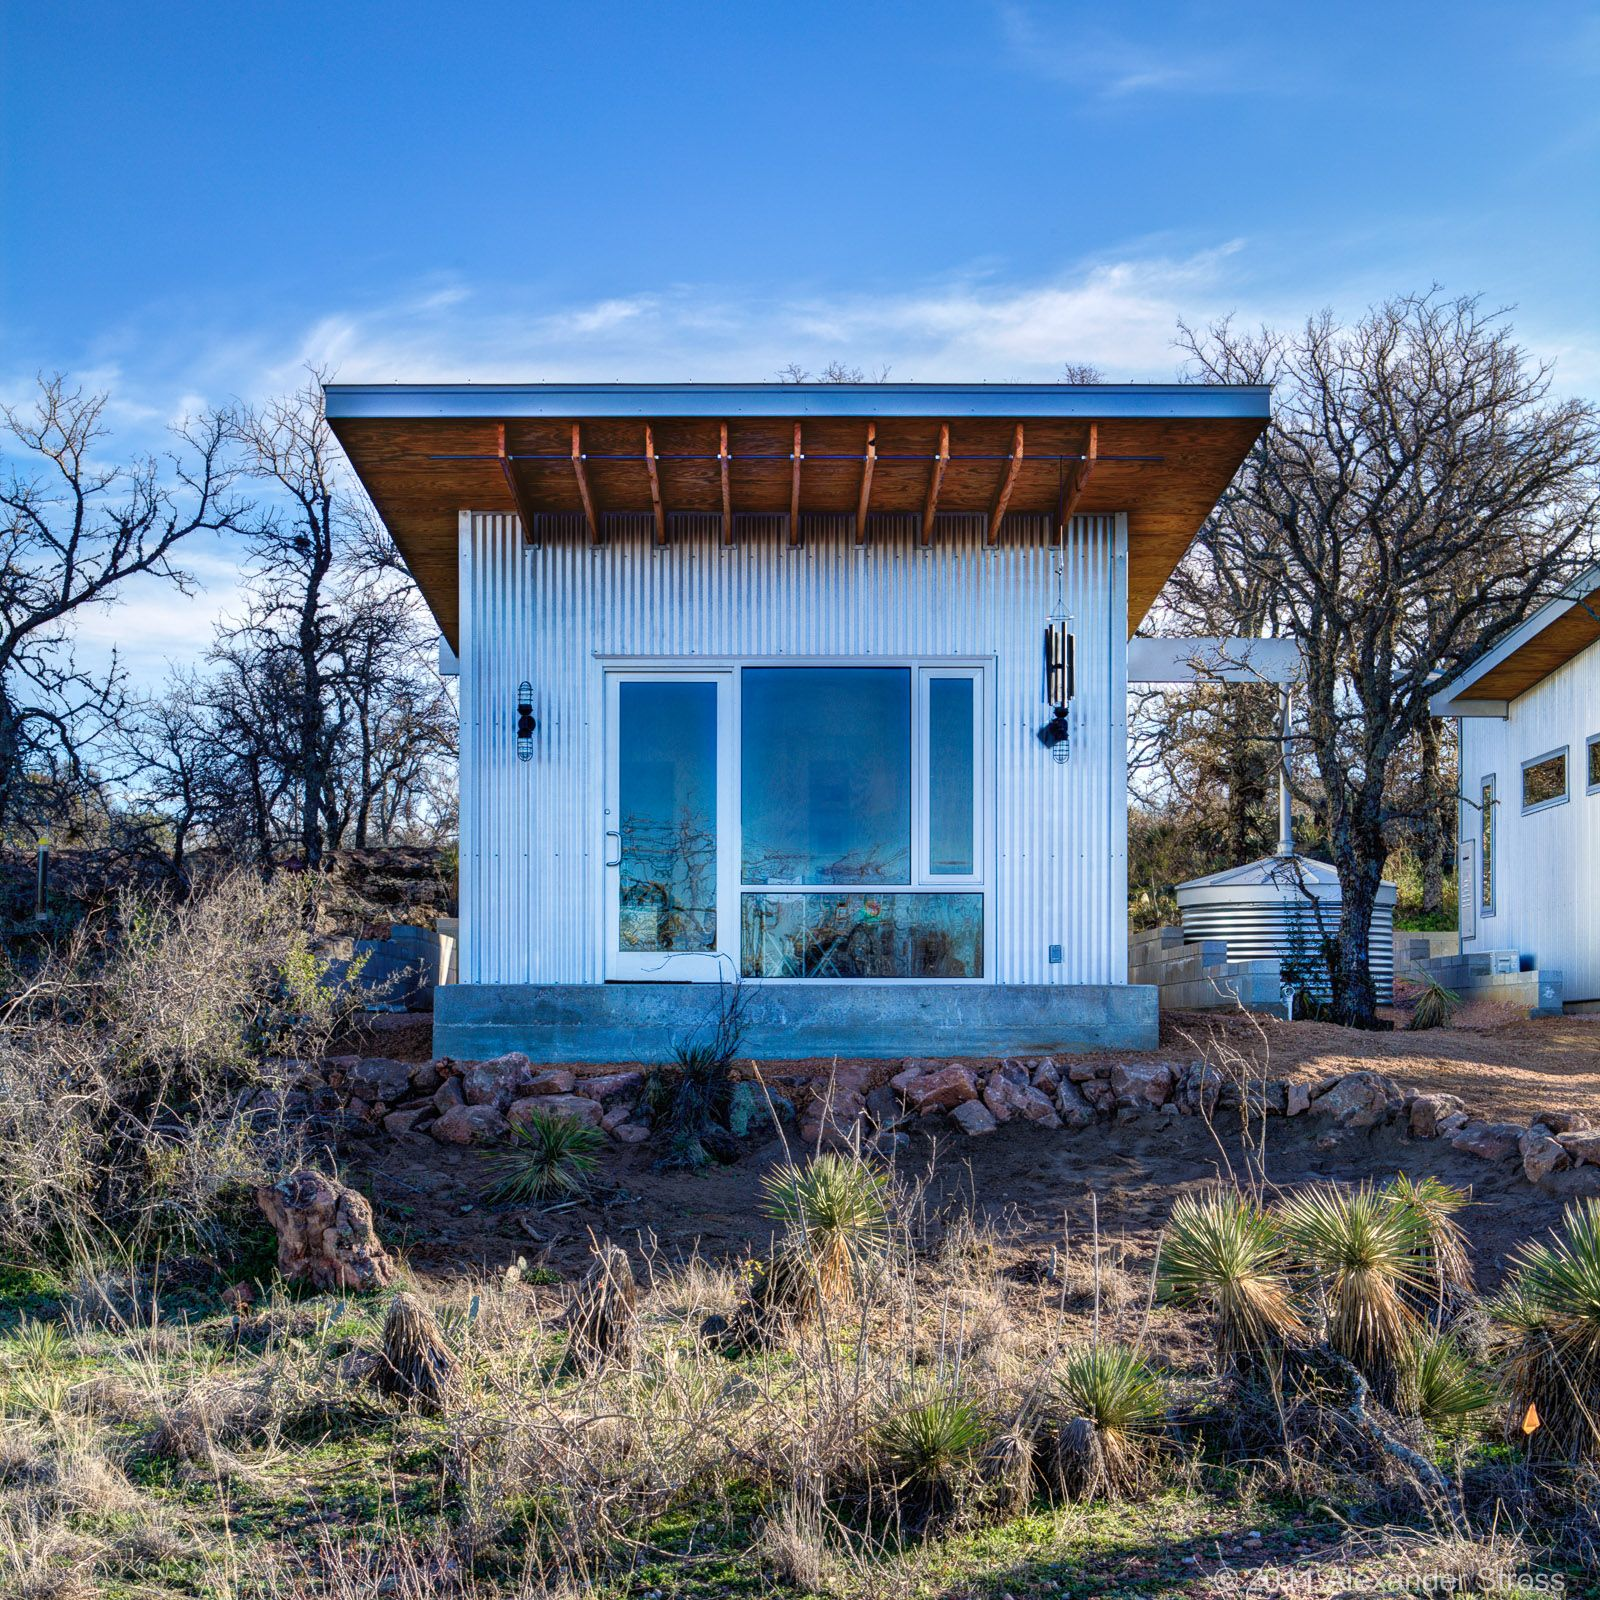 Friends build a tiny house pound in the middle of nowhere they call Bestie Row